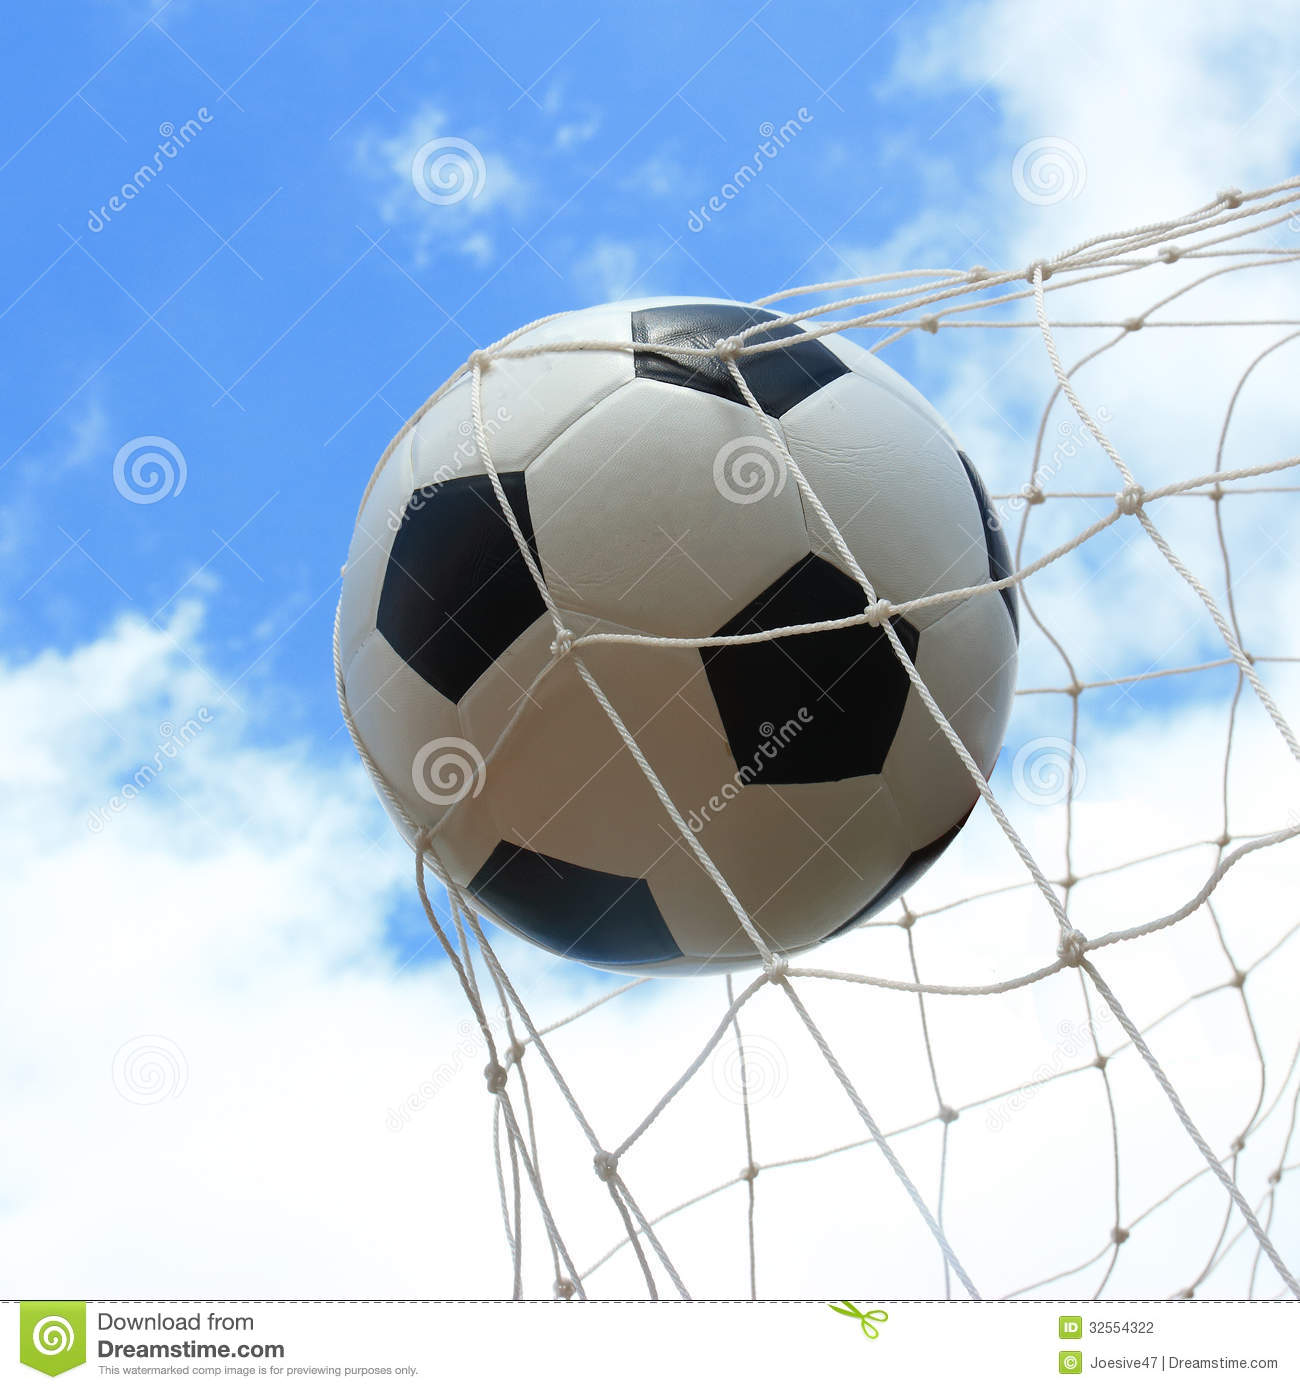 Soccer Ball In Goal Stock Photo Image Of League Kick